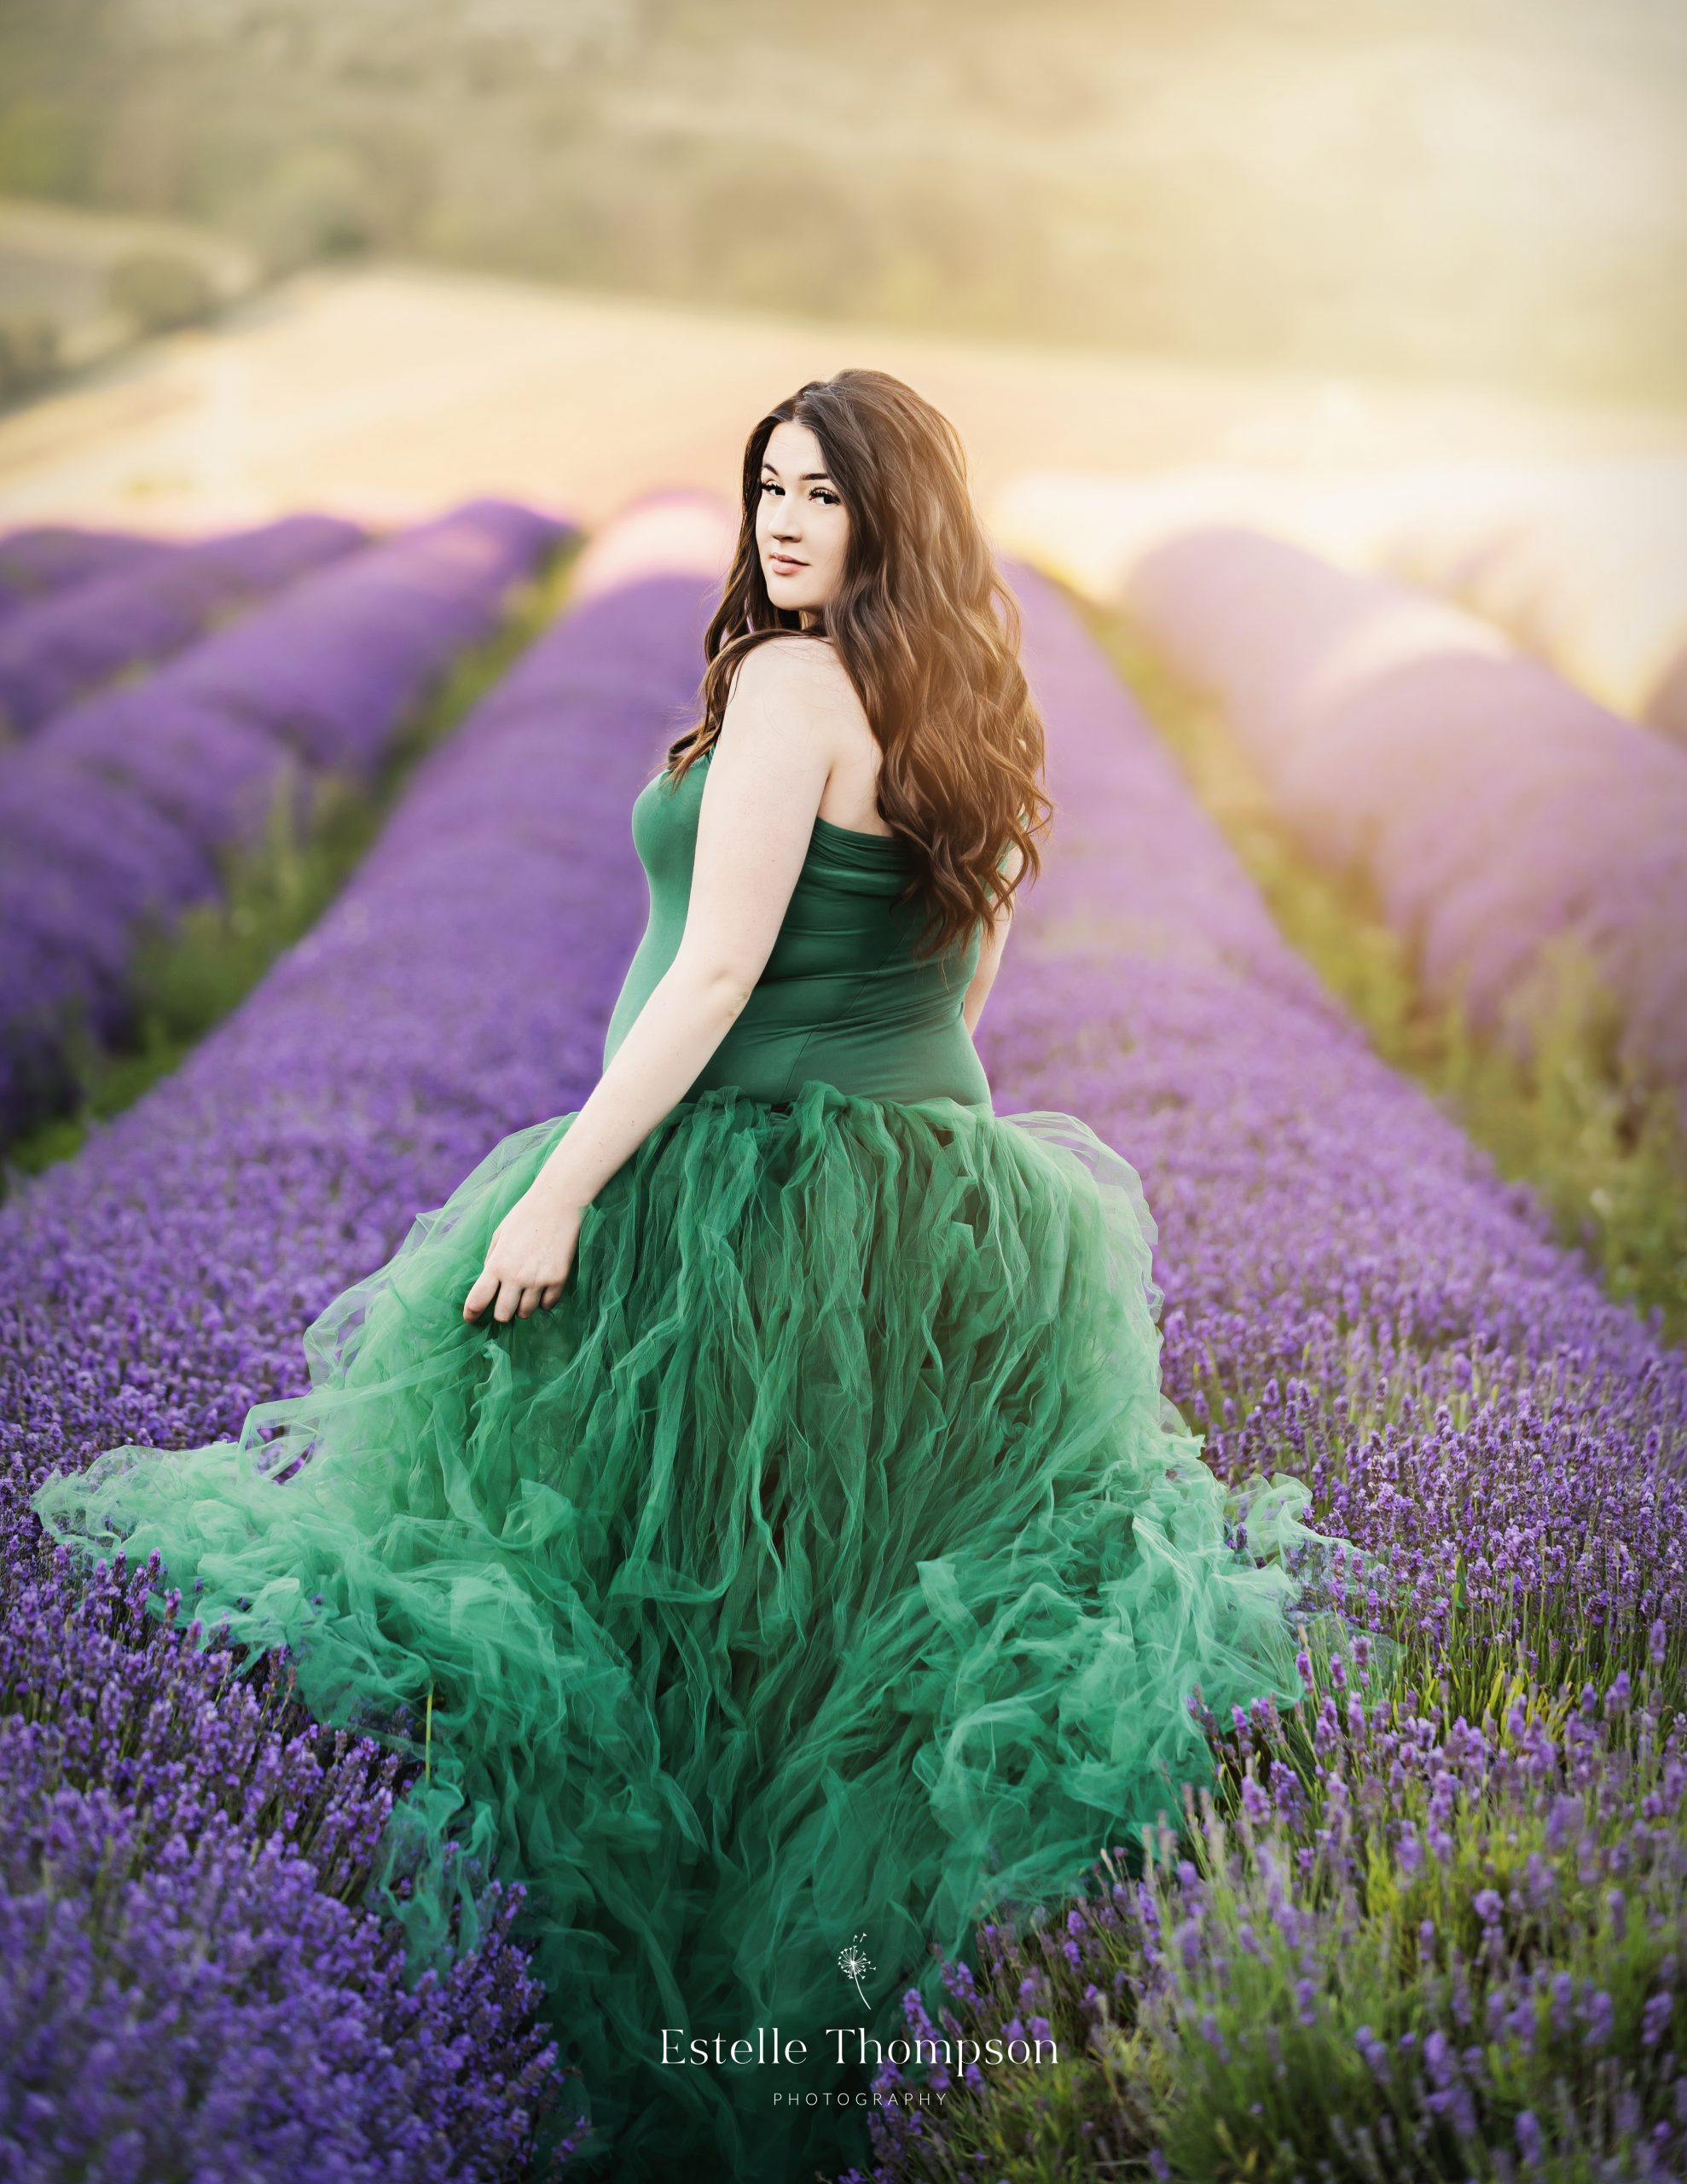 Aa pregnant lady walks through a lavender field on maternity photoshoot in kent